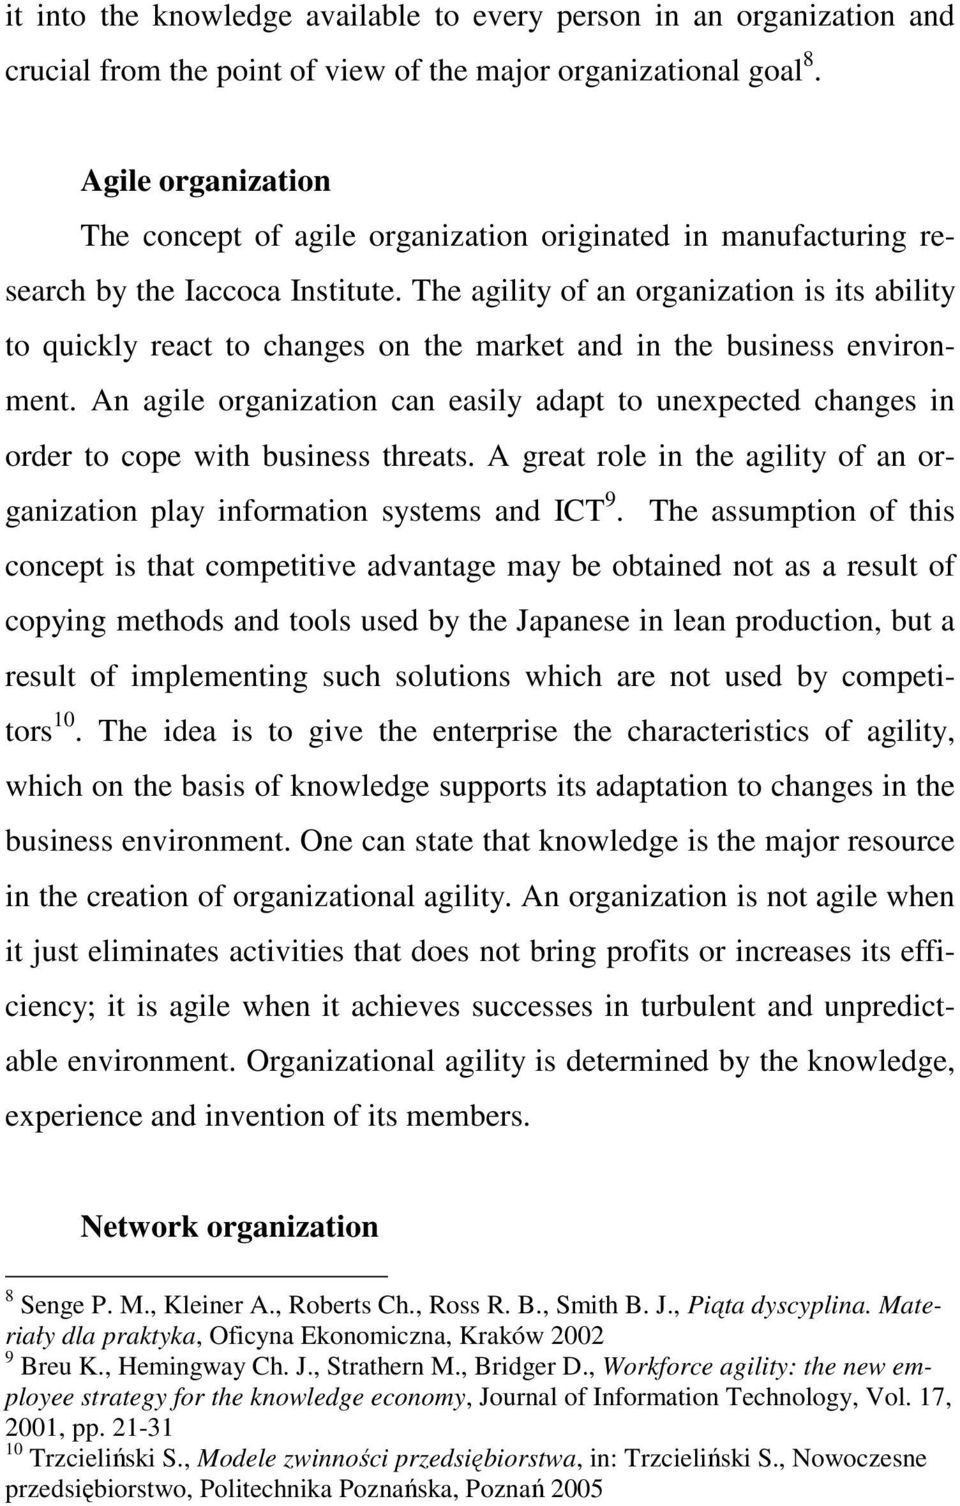 The agility of an organization is its ability to quickly react to changes on the market and in the business environment.